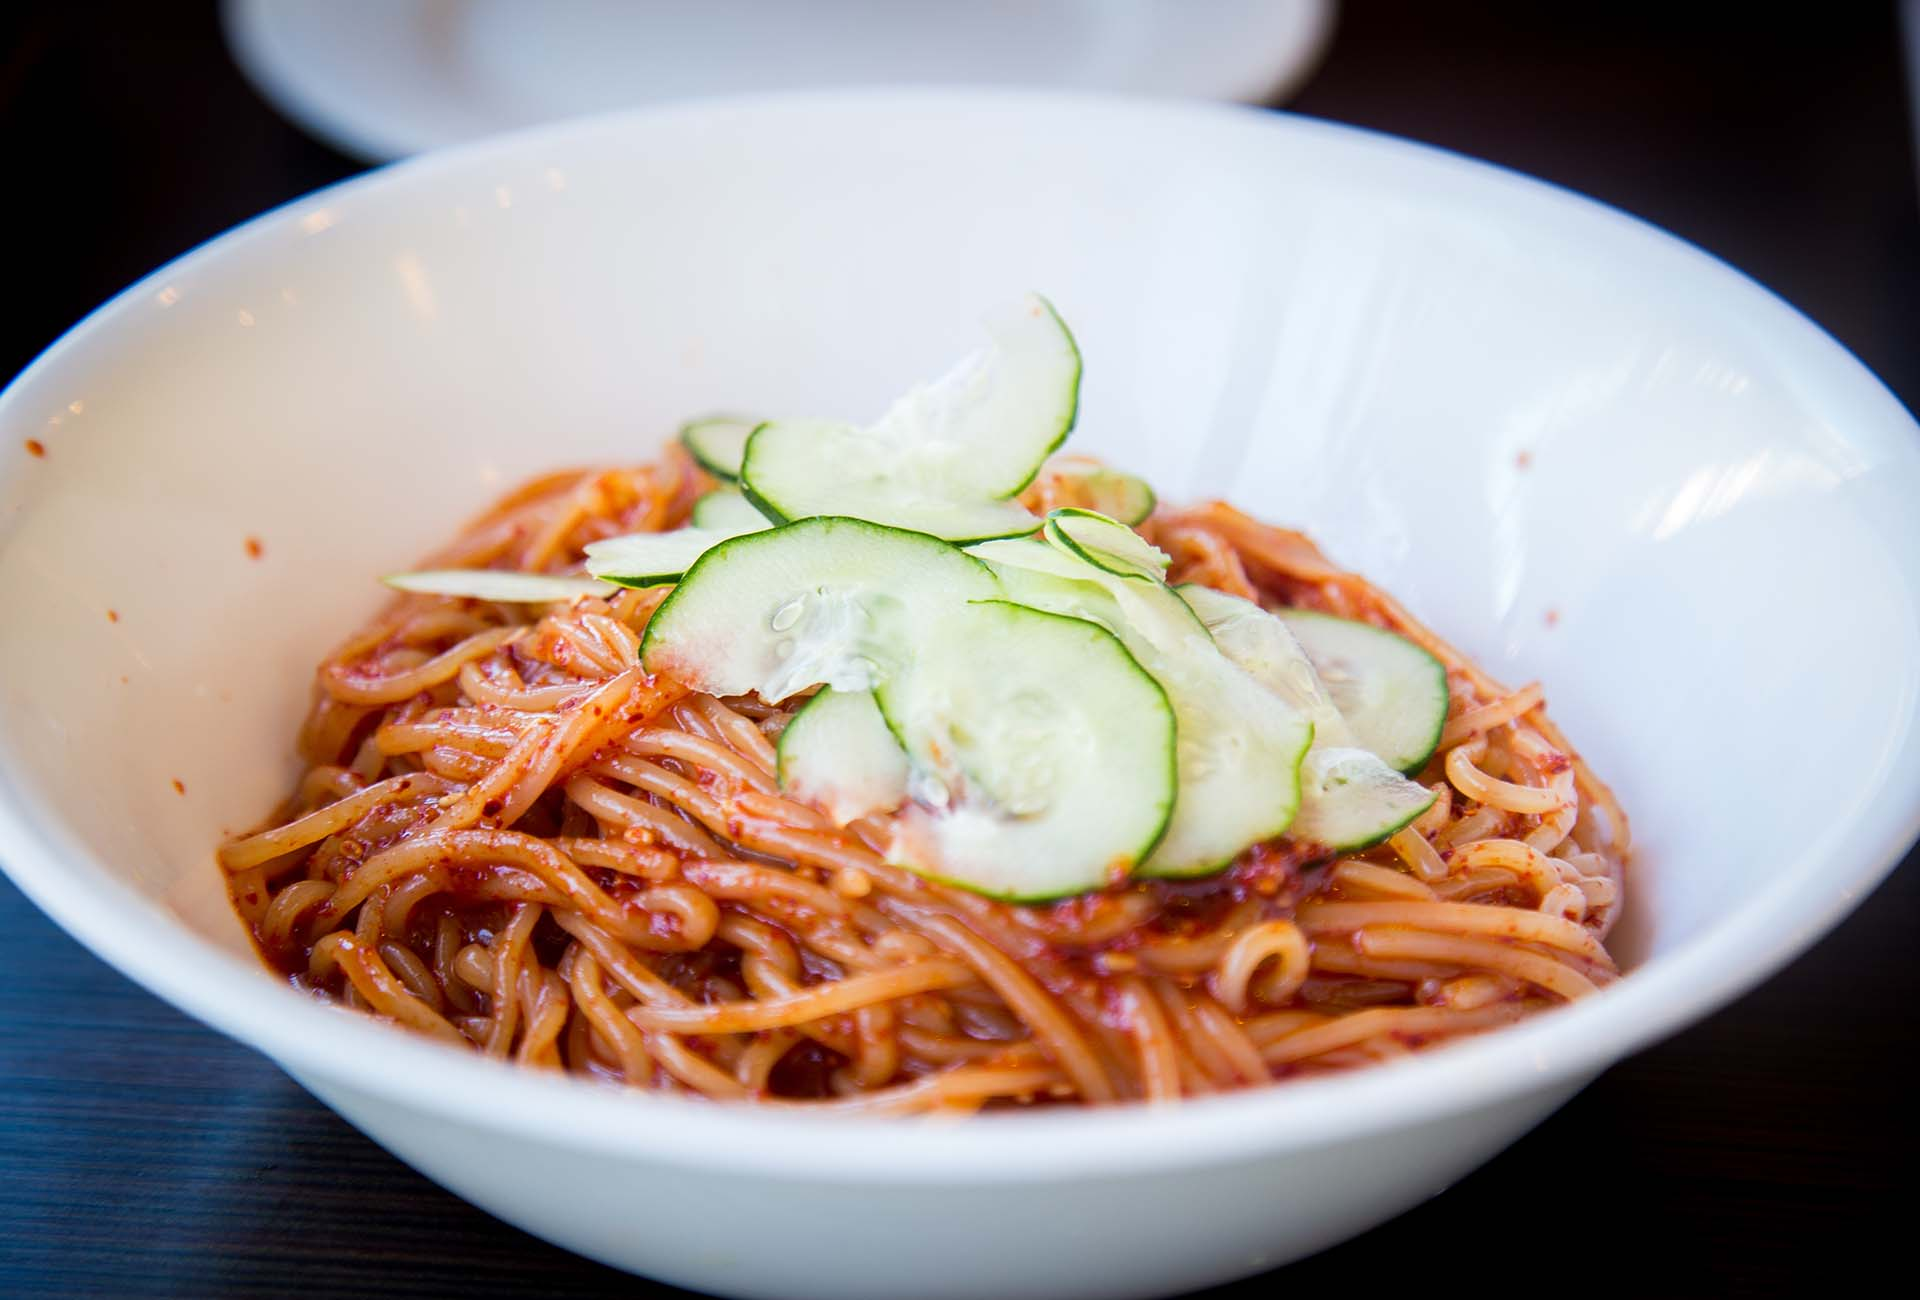 The chol-myun, or spicy cold noodles with cucumbers